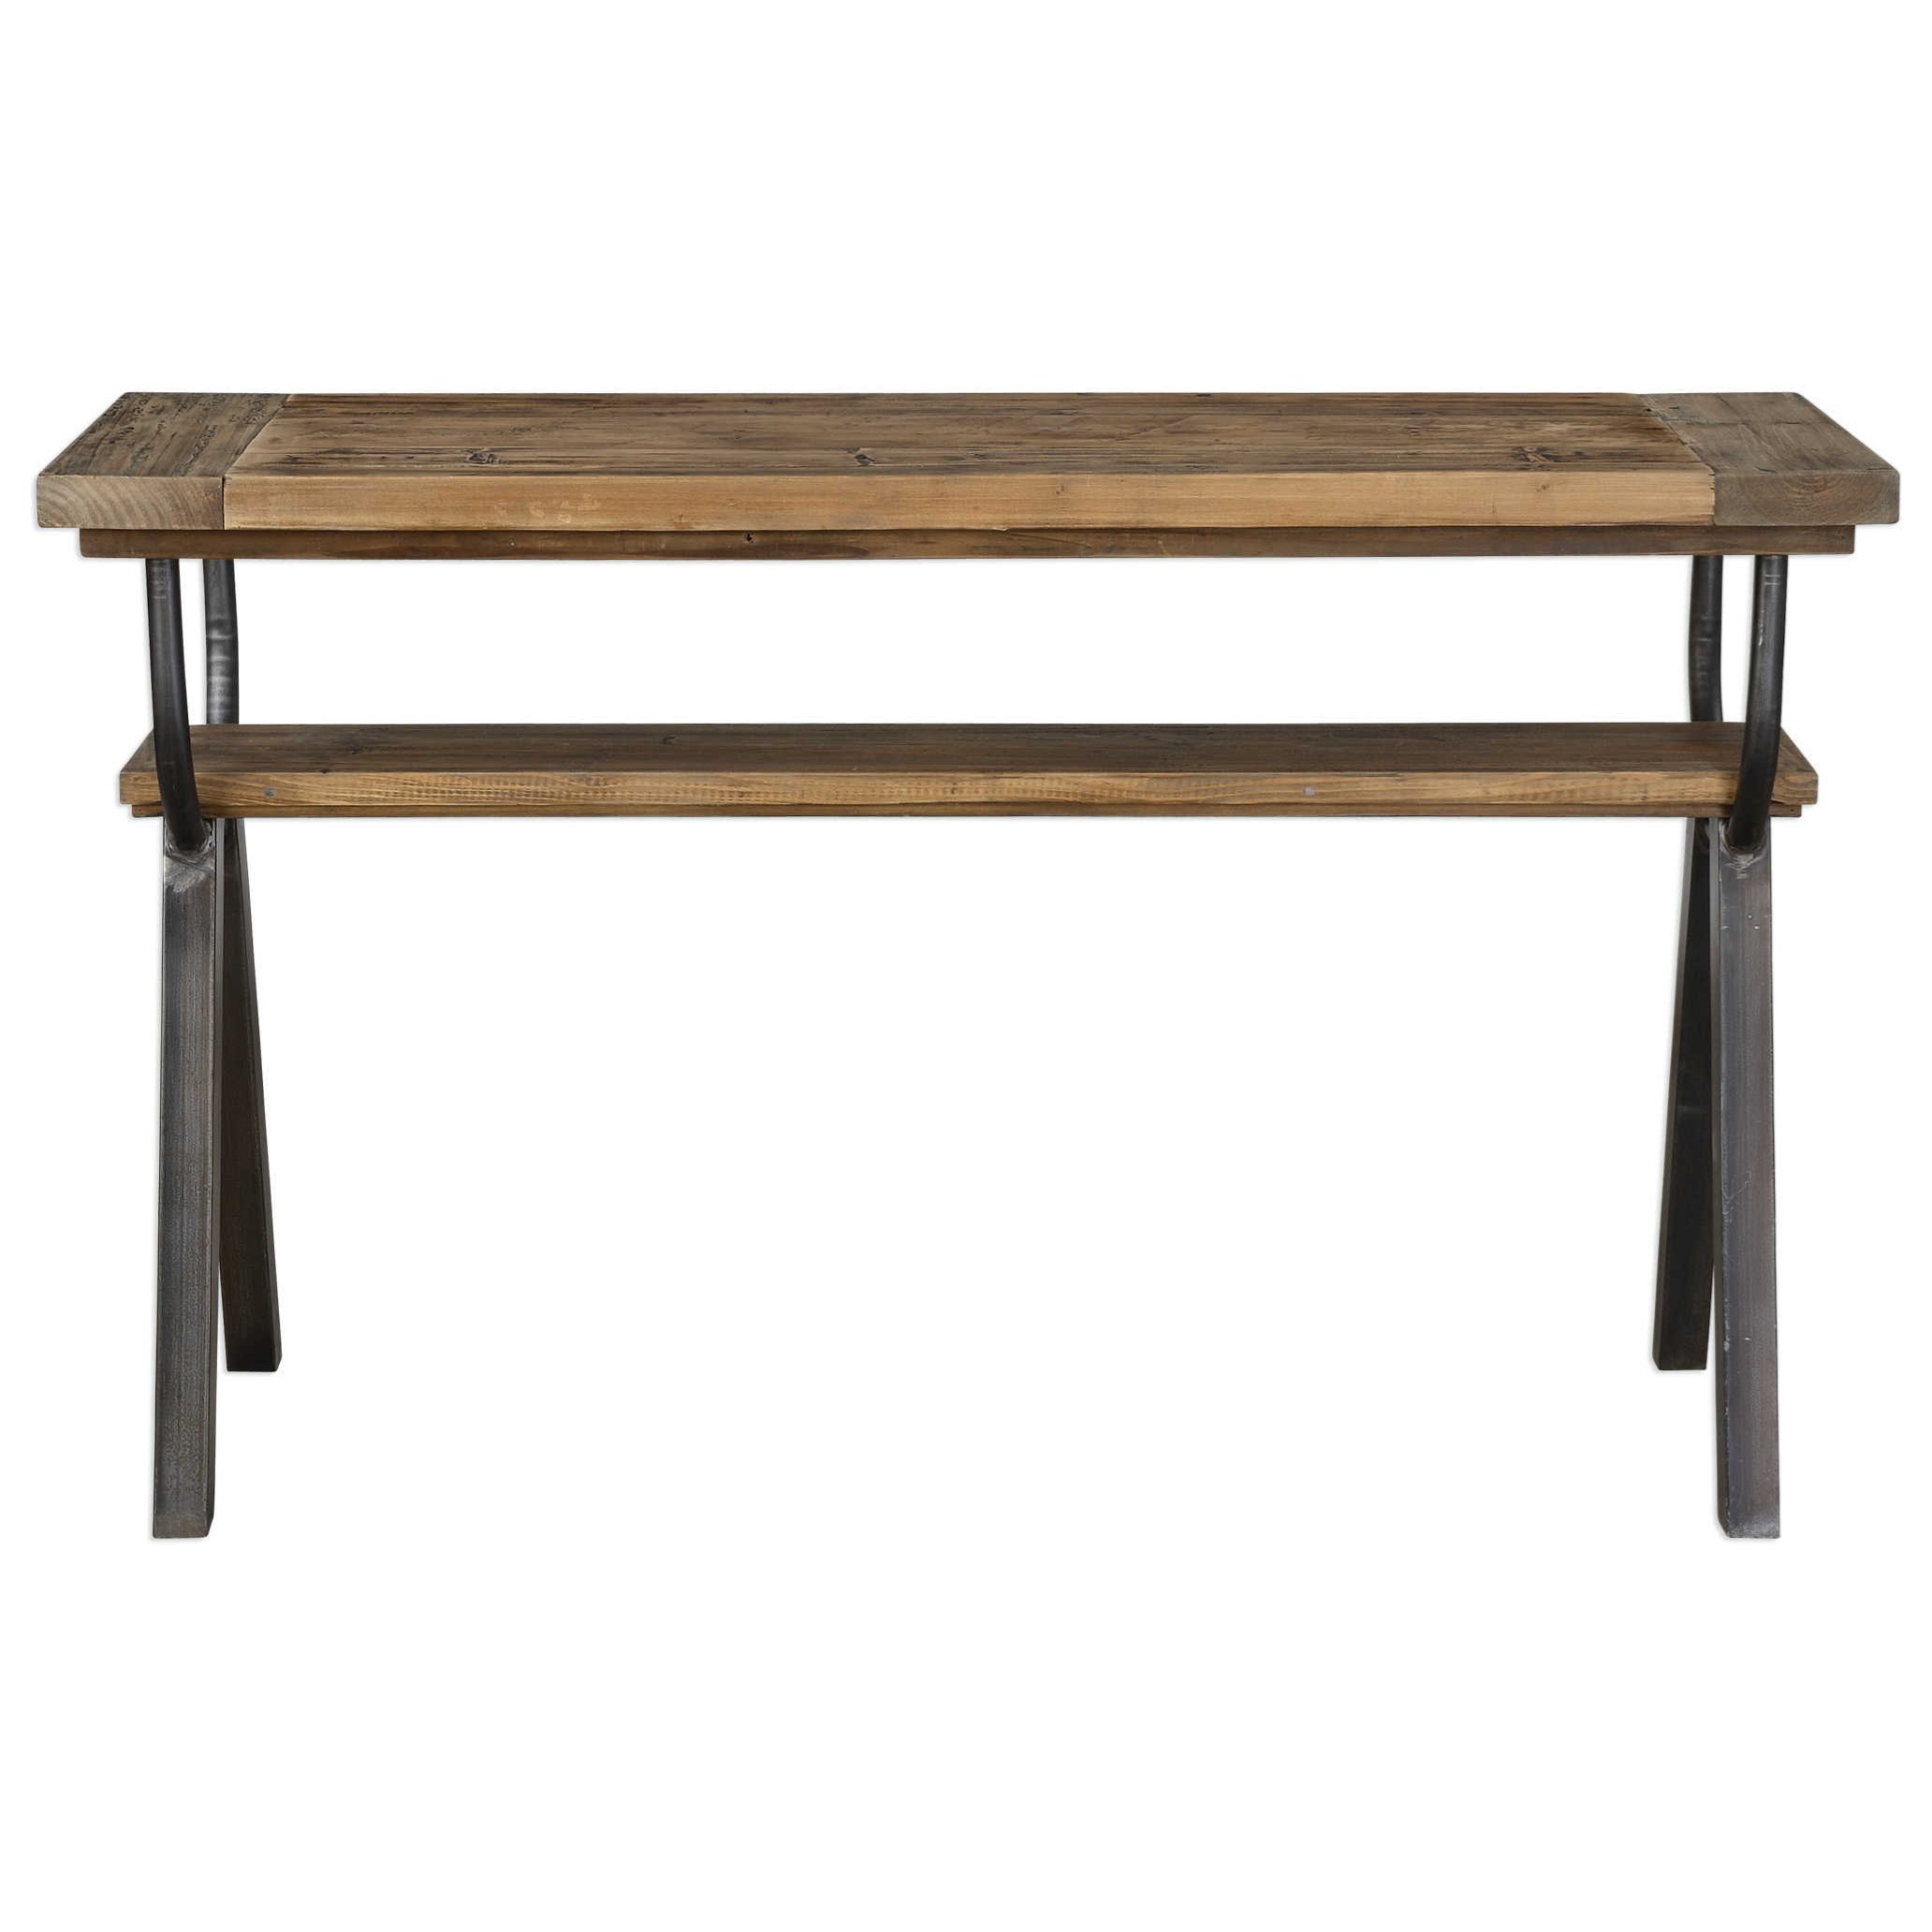 Accent Furniture - Occasional Tables Domini Industrial Console Table by Uttermost at Del Sol Furniture